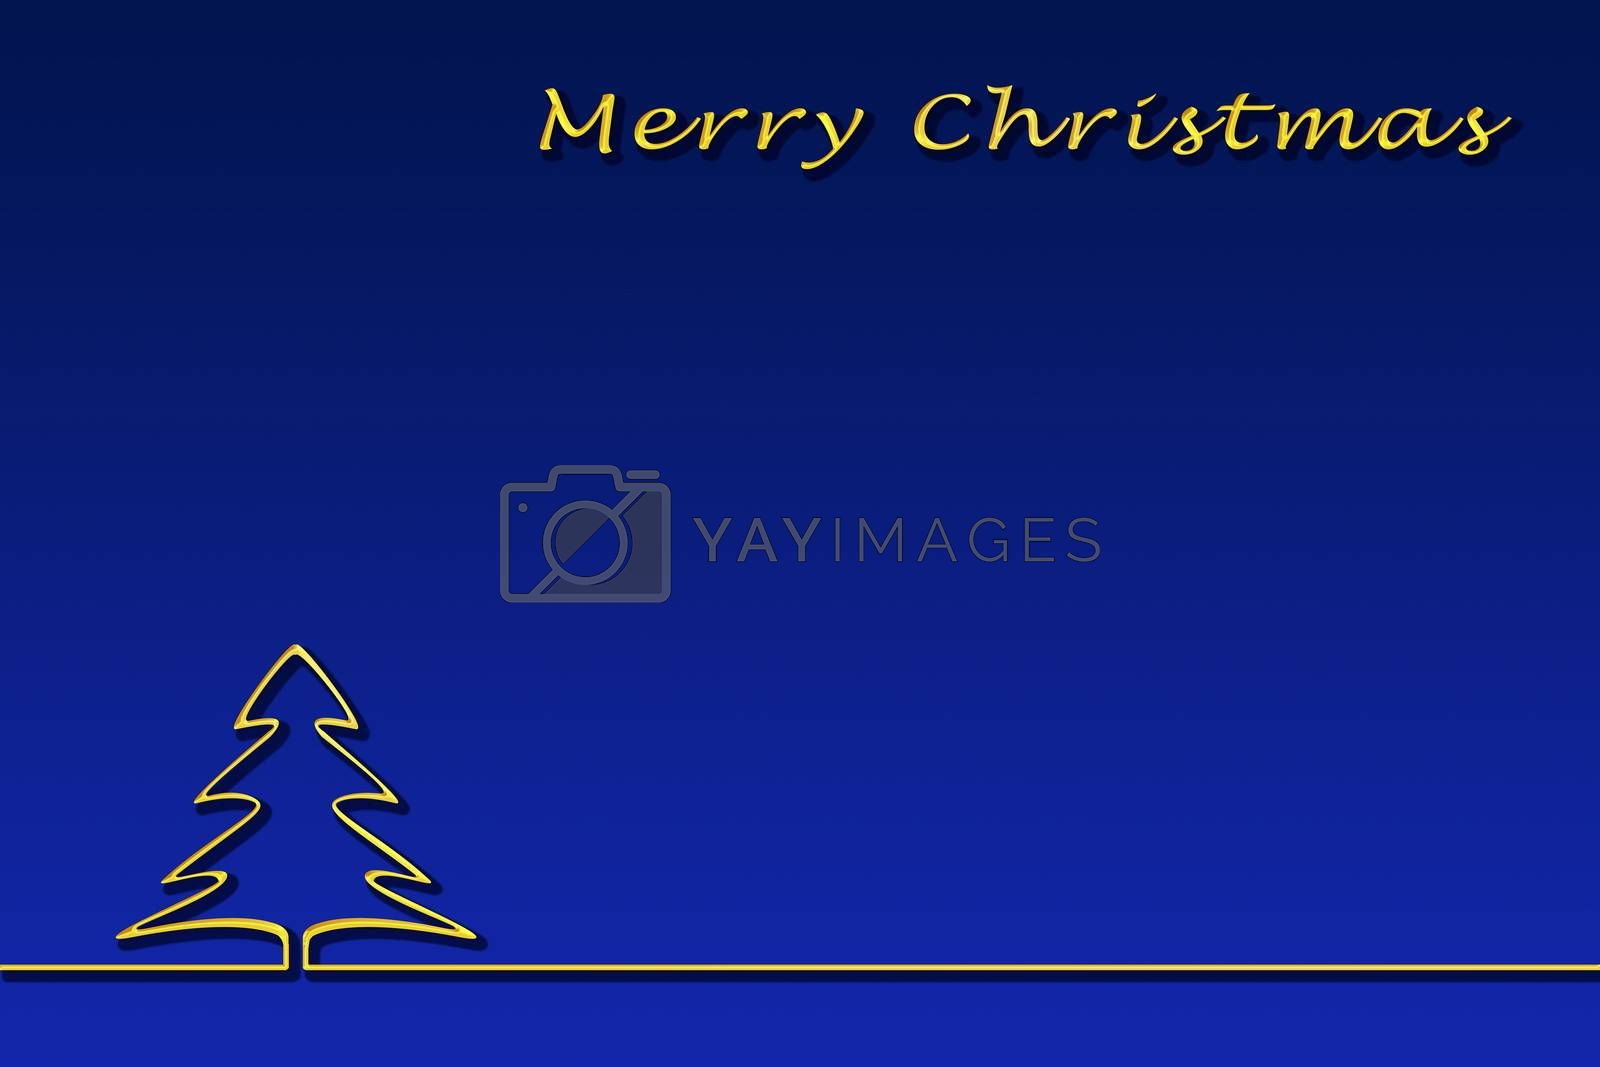 Template for congratulations on Christmas. Gold lettering of a happy Christmas and contour of a Christmas tree, blue gradient background